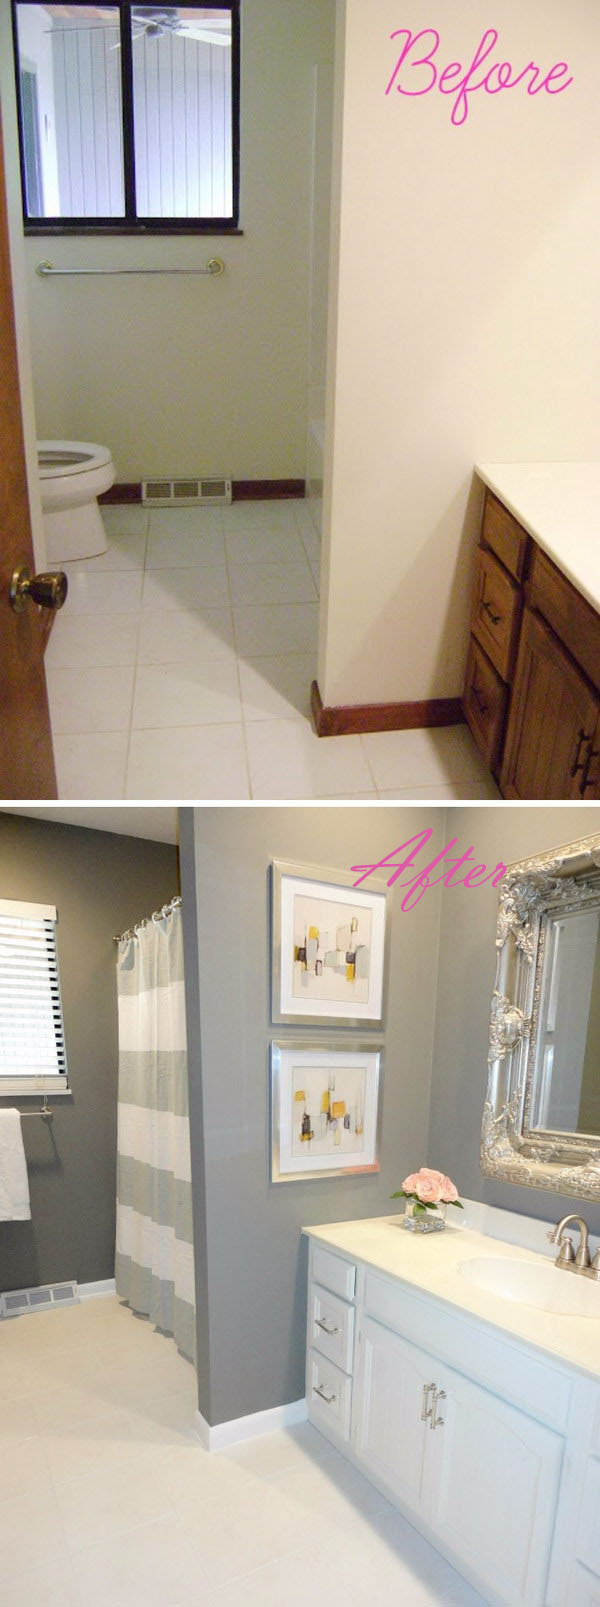 47-48-bathroom-remodel-before-and-after